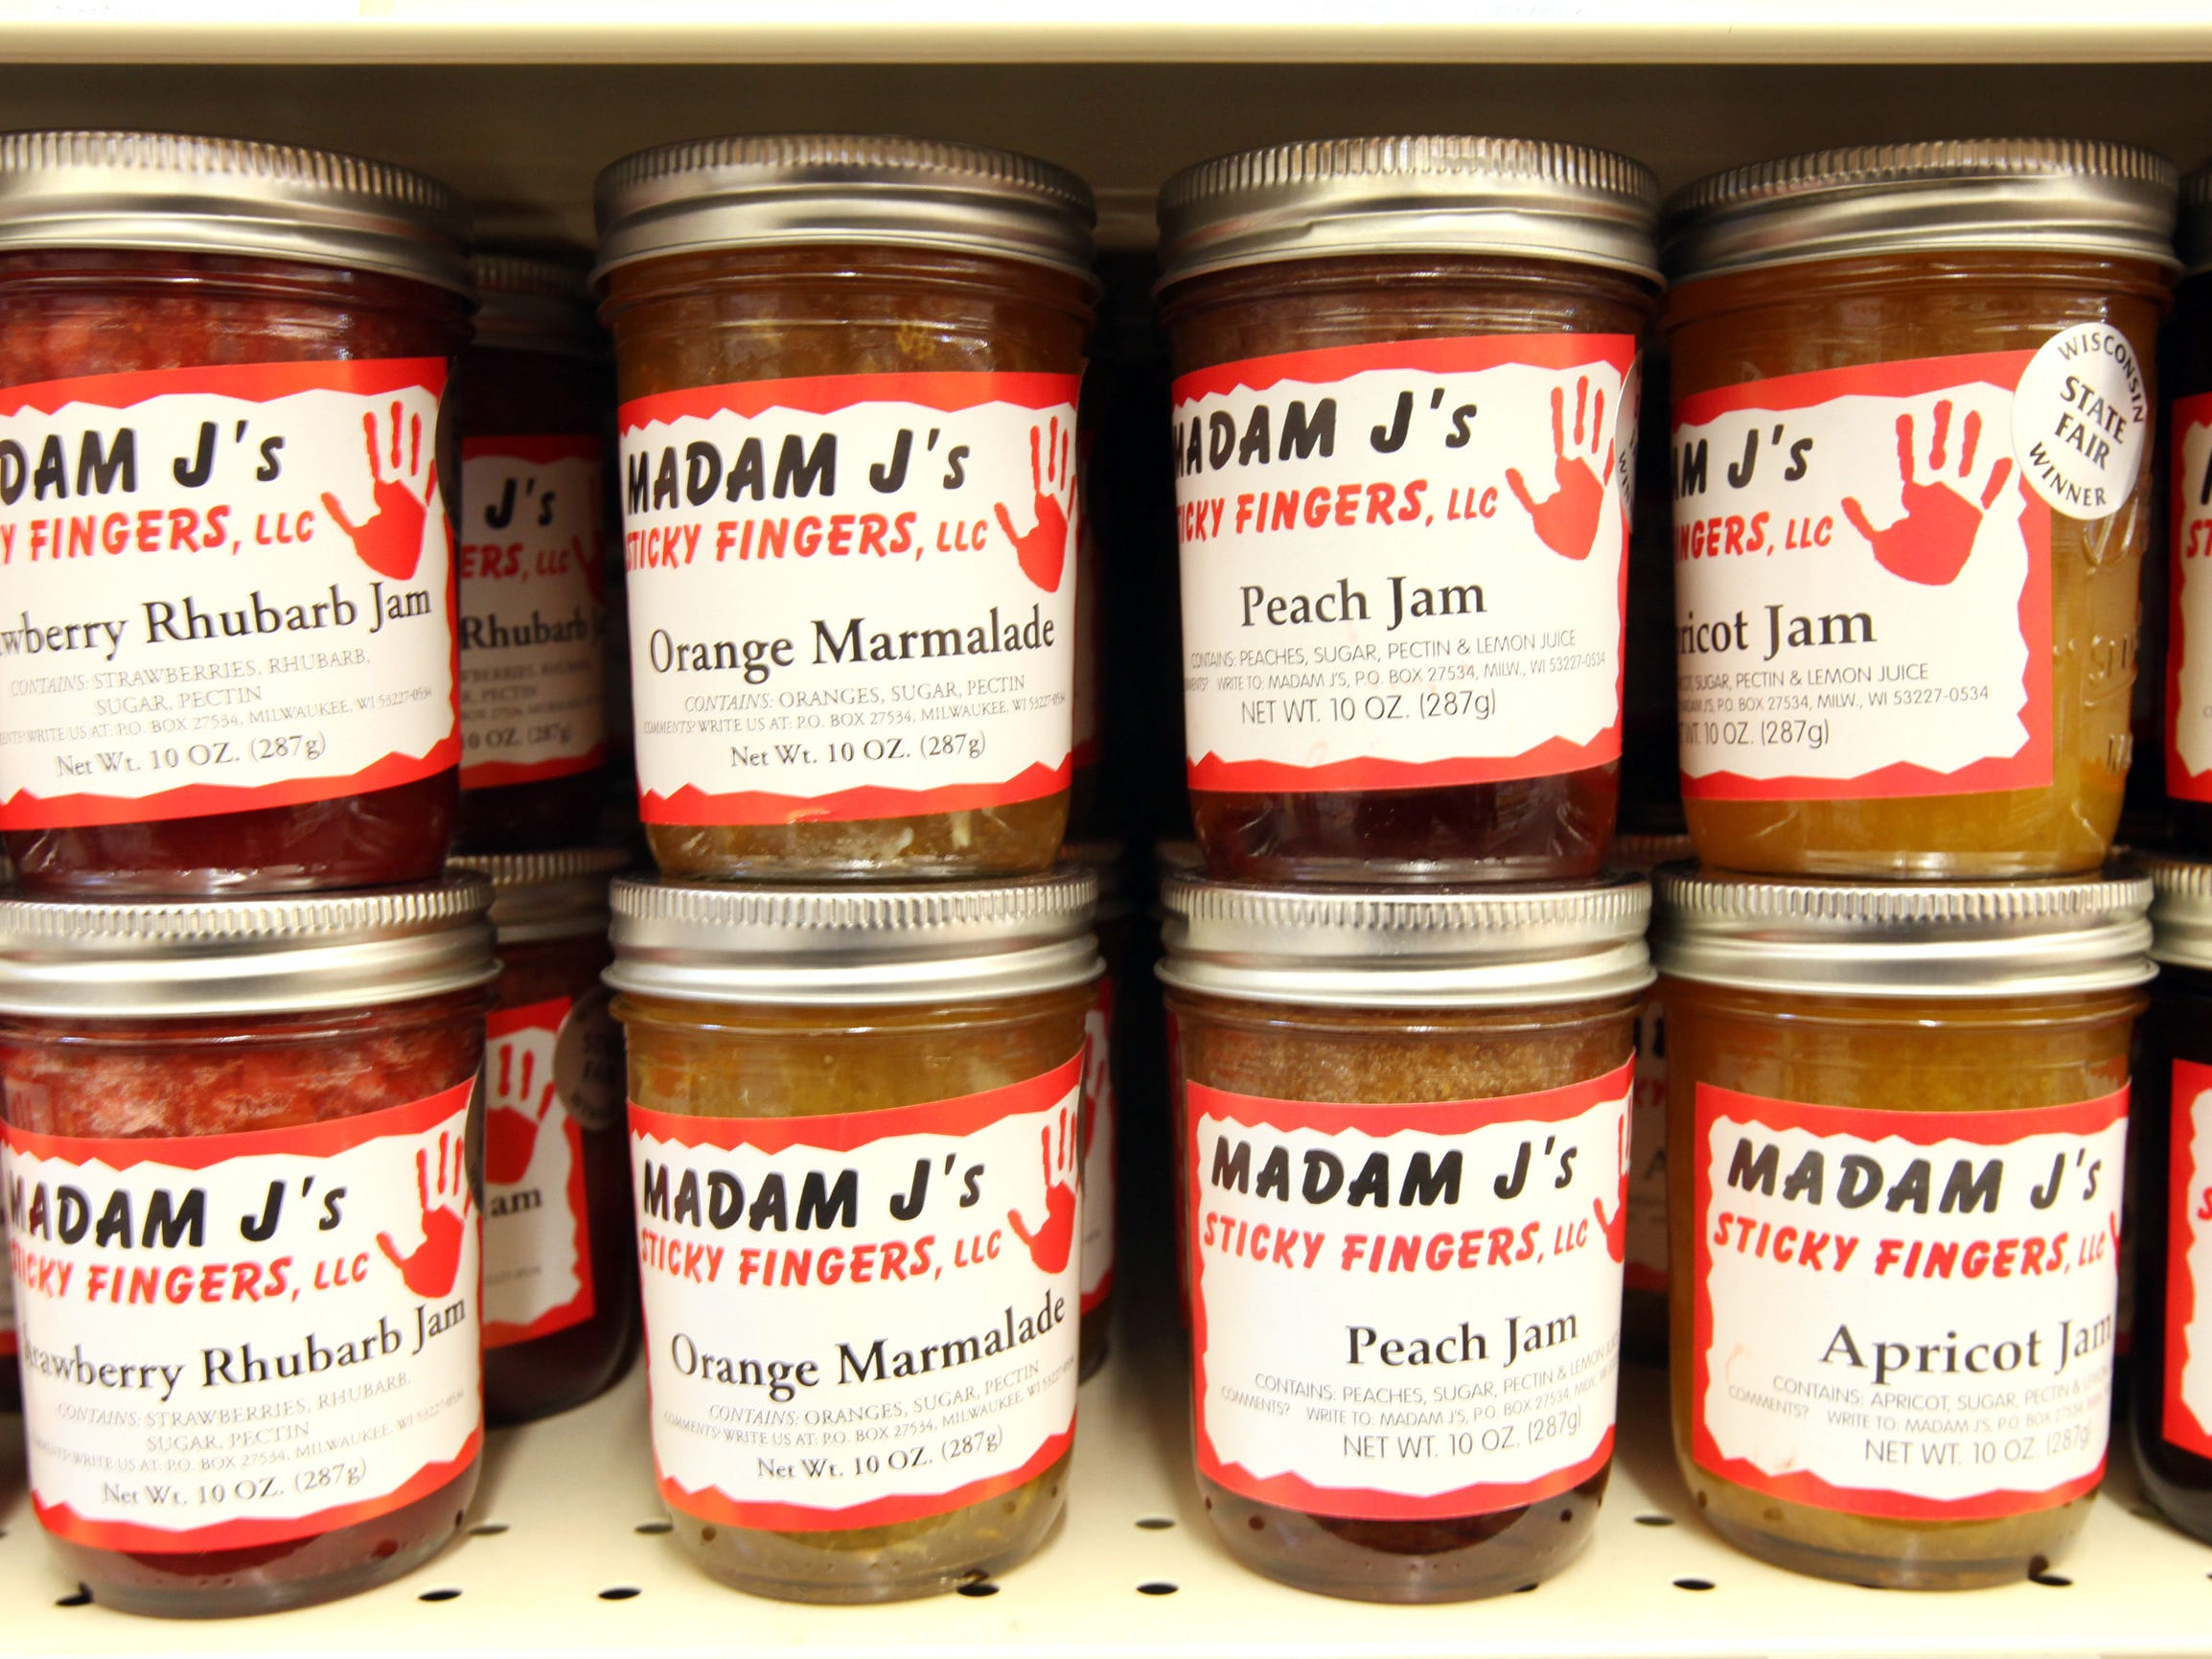 Jams and jellies do not have to be refrigerated after opening, but it's still advisable to keep them fresh longer.